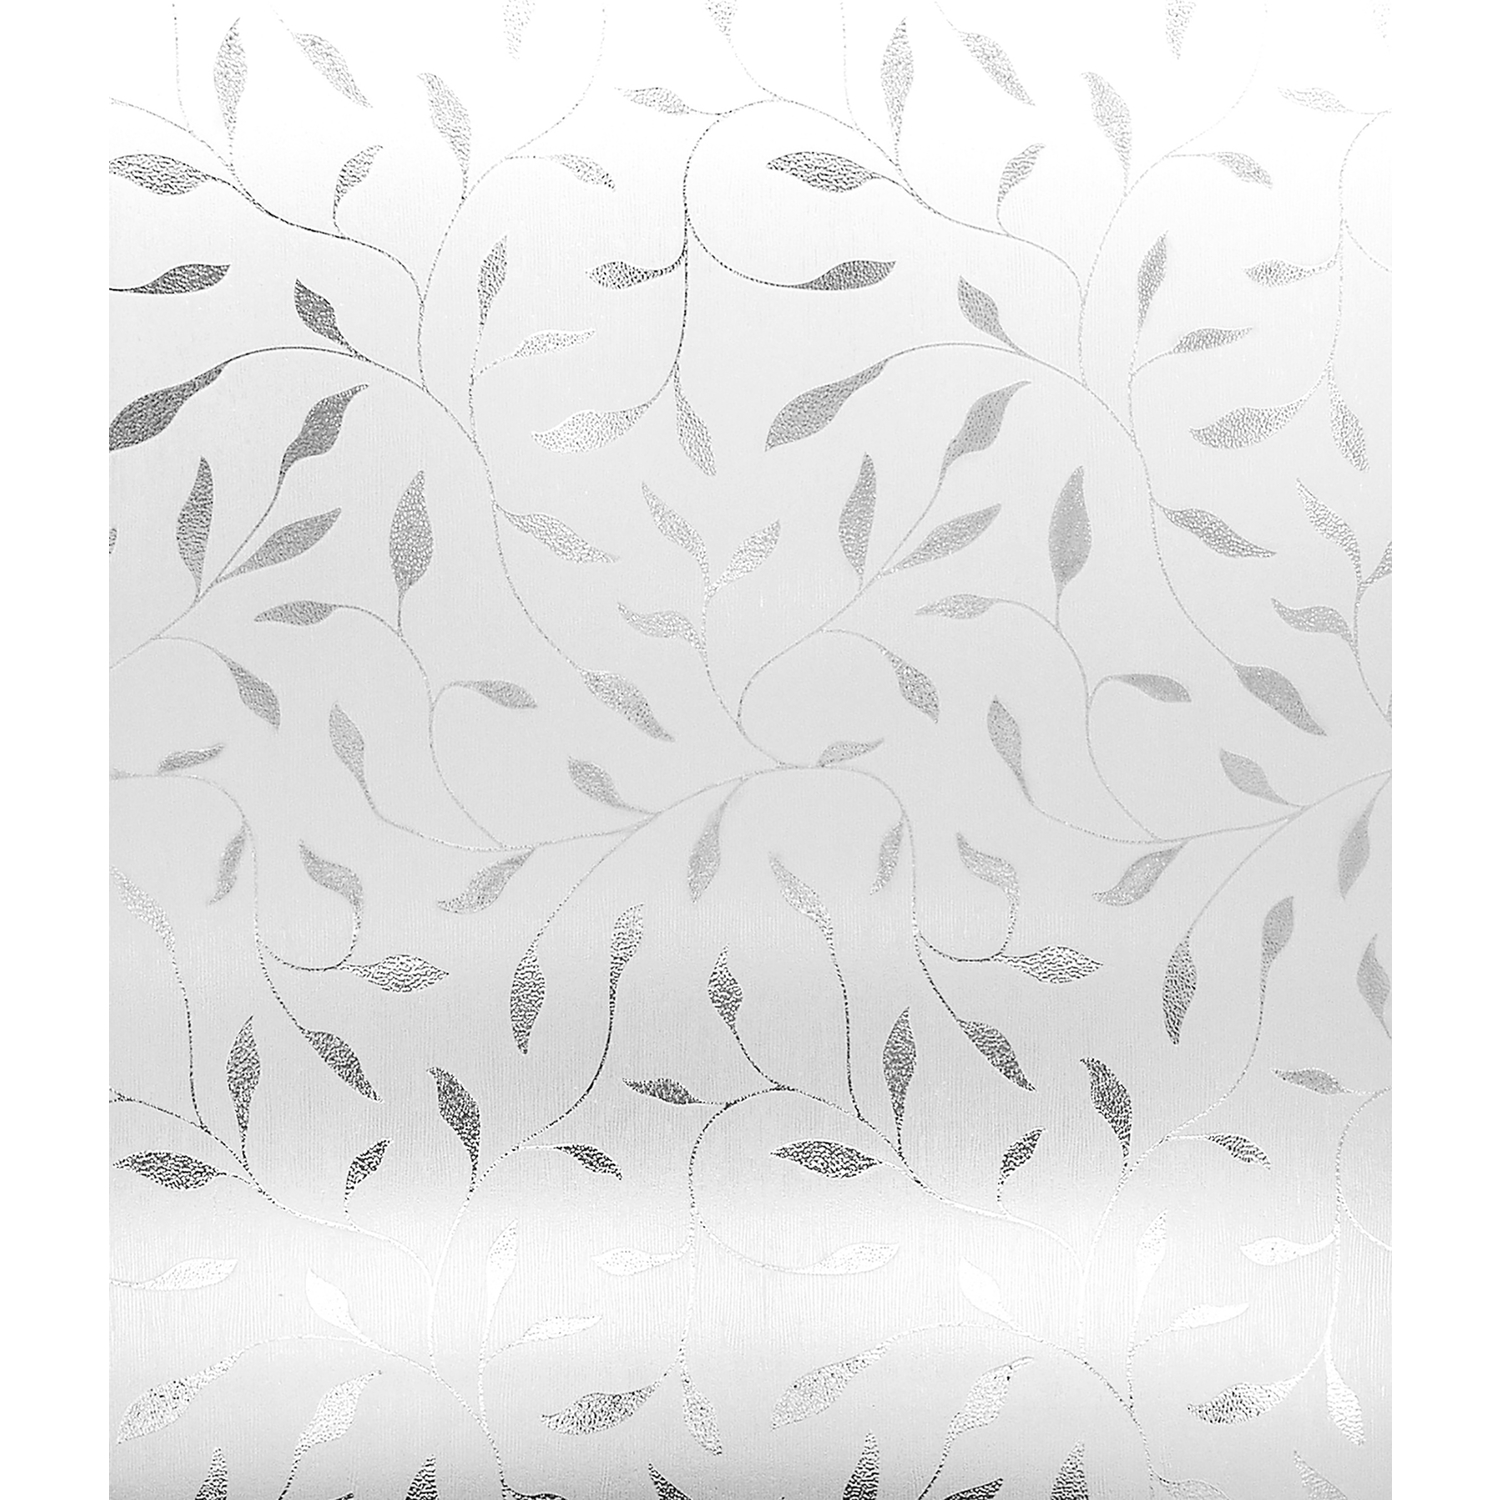 Artscape  Etched Leaf  Etched Leaf 24 In. x 36 In.  Indoor  Window Film  24 in. W x 36 in. L